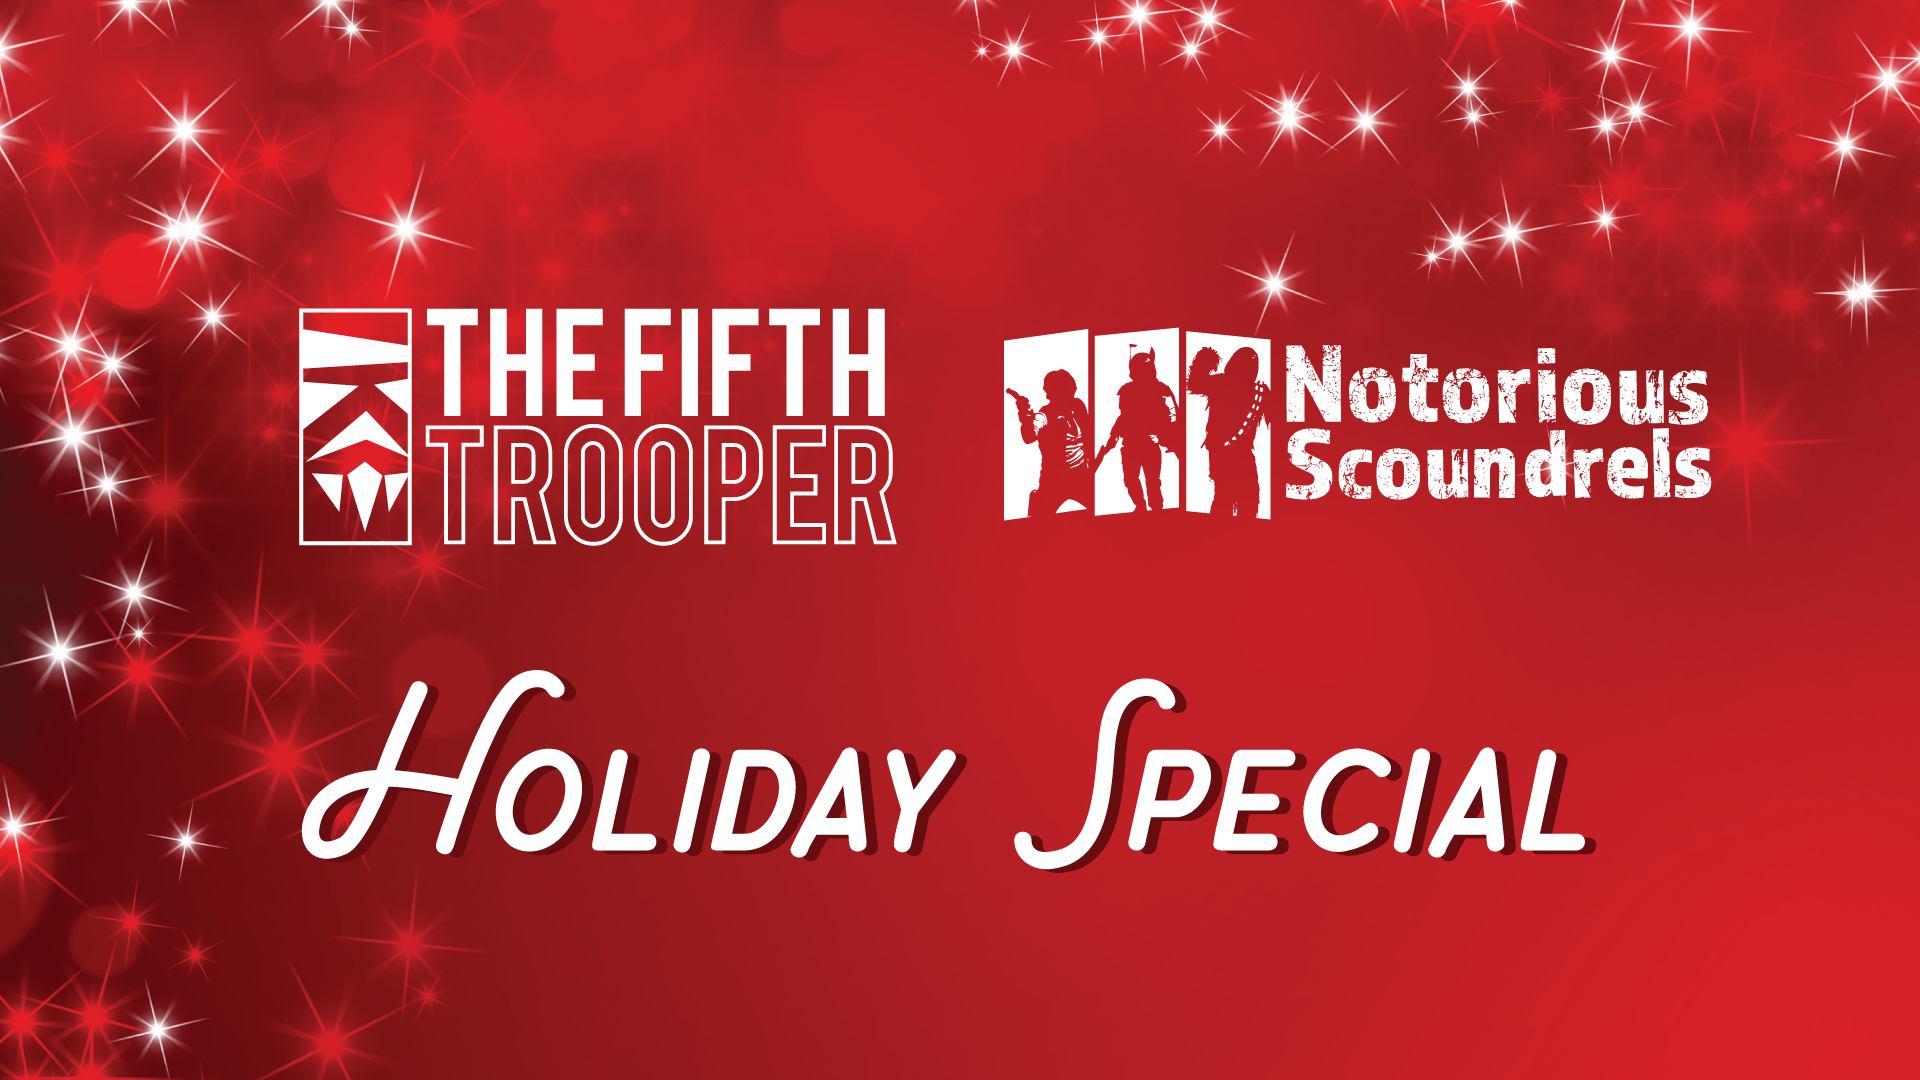 The Holiday Special - Featuring The Fifth Trooper & Notorious Scoundrels